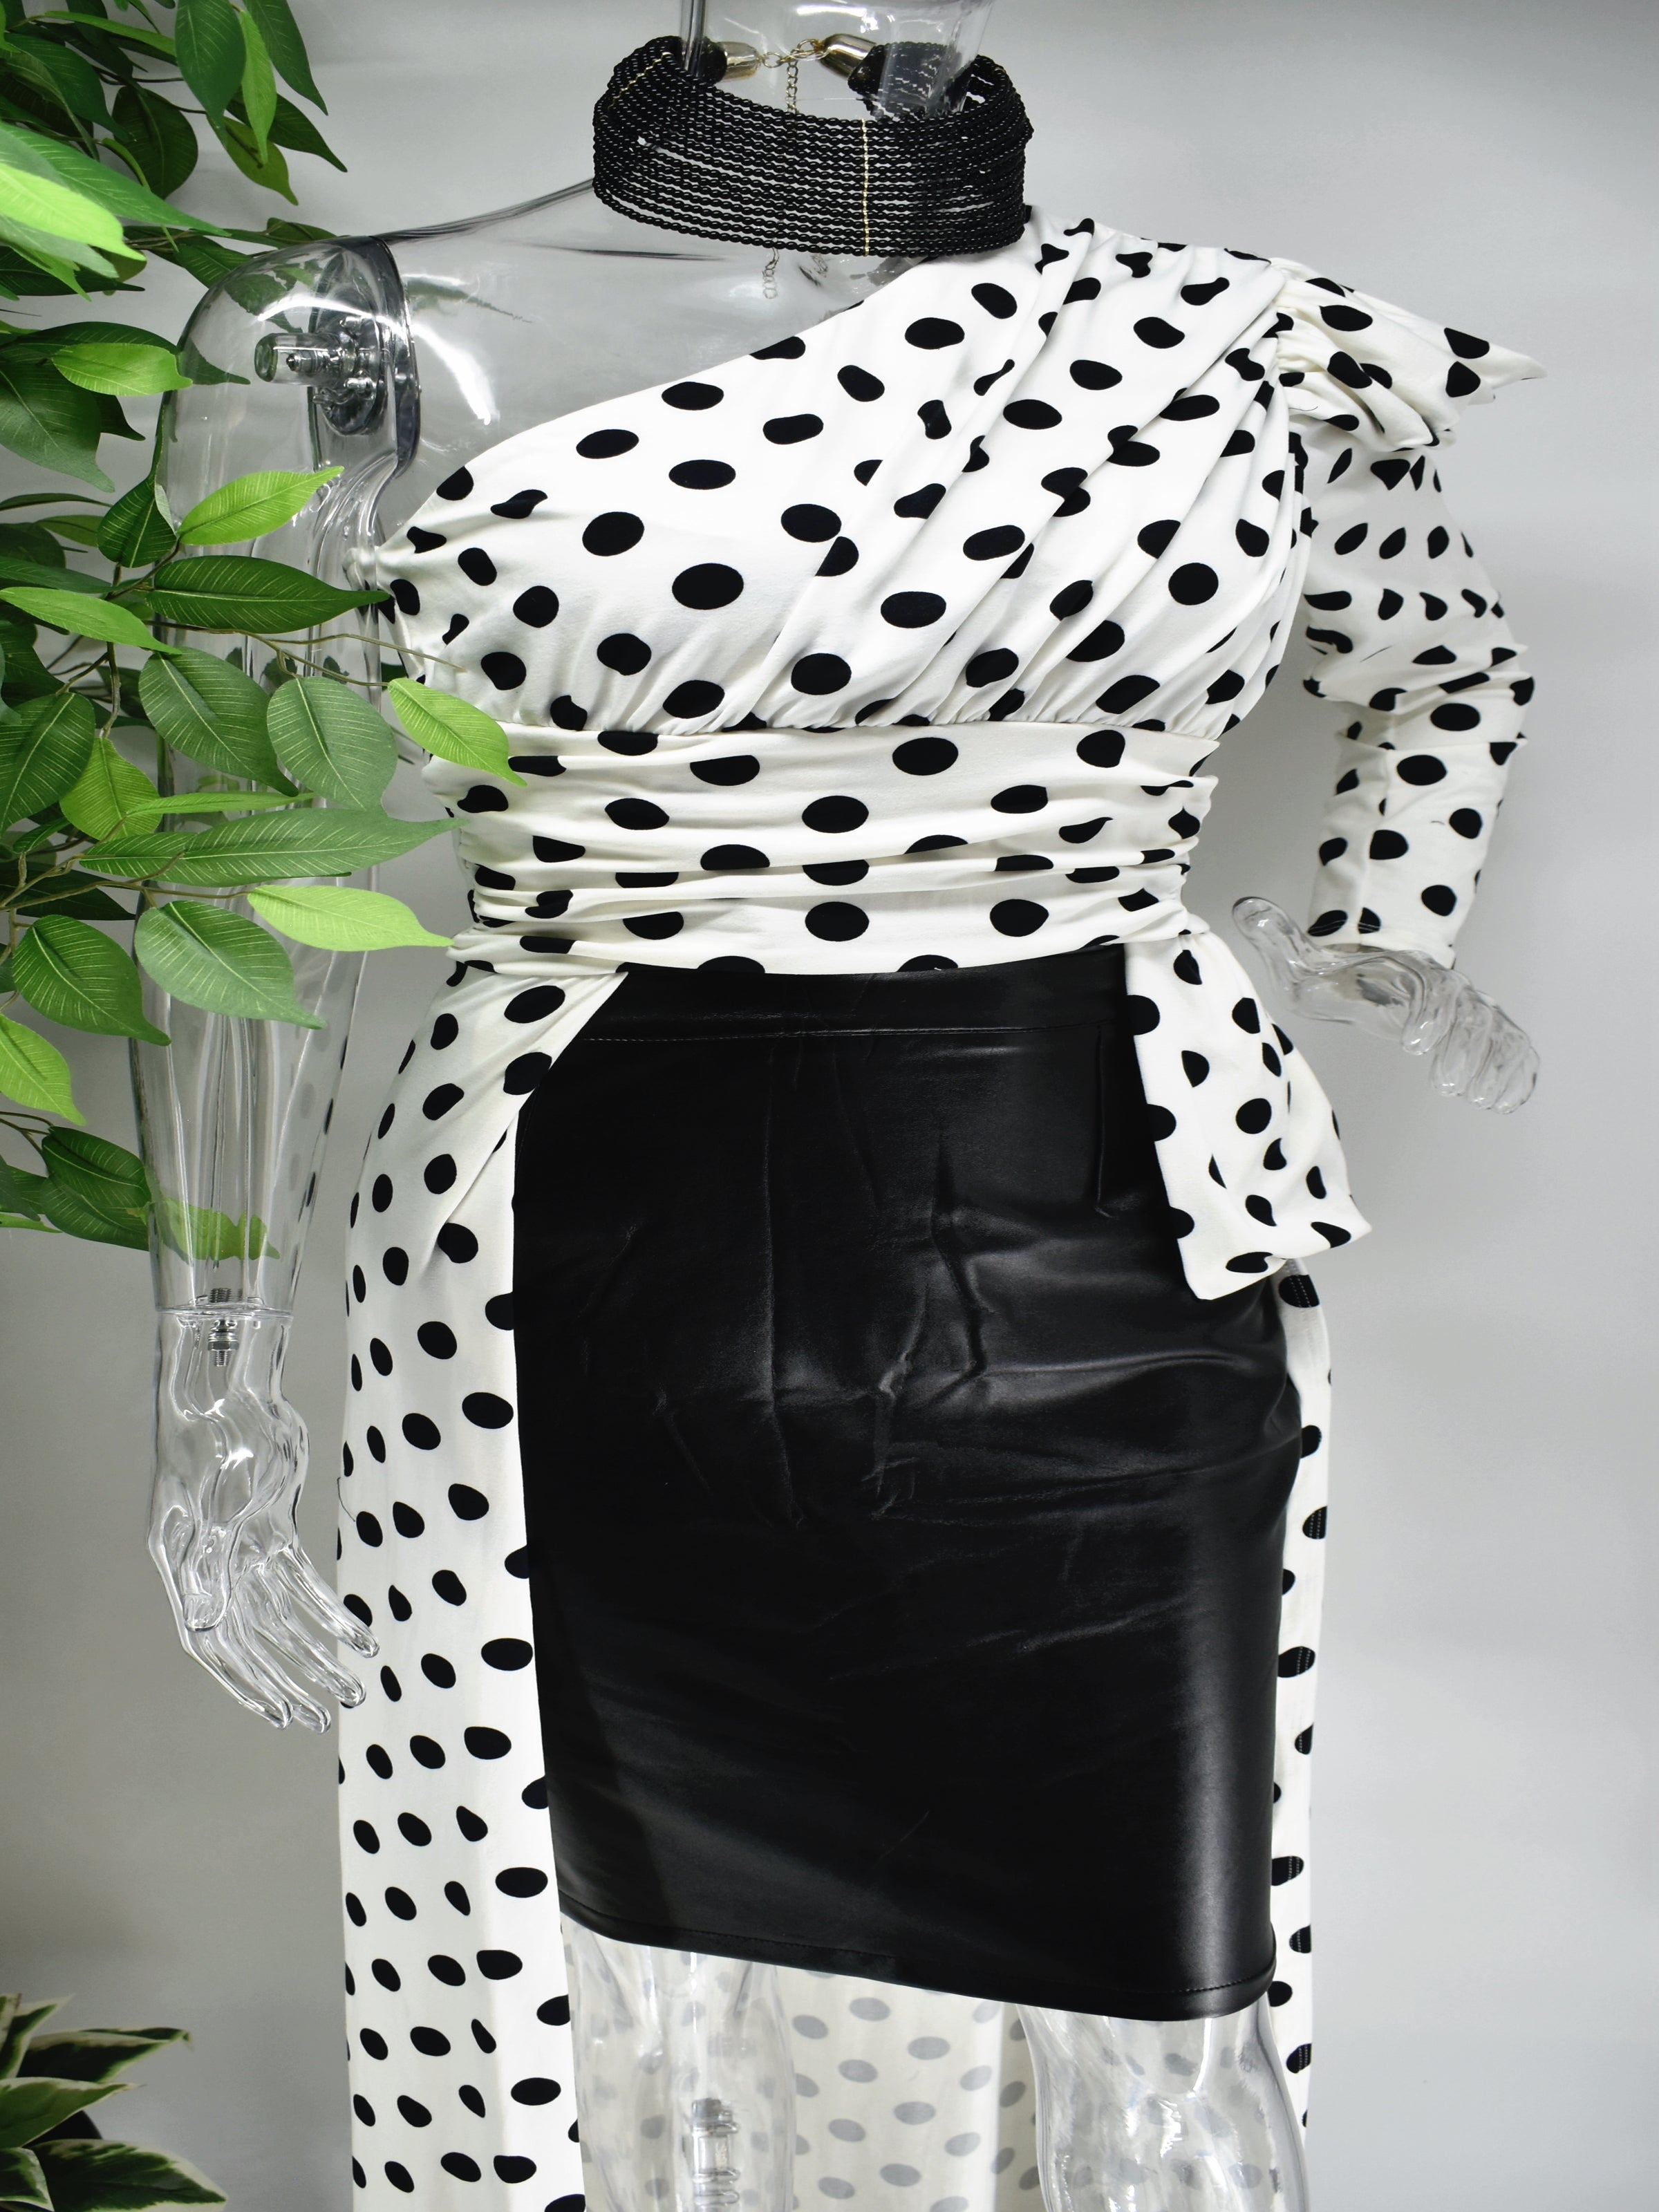 Let's go out and get Jiggy in our Biddy white with black polka dot top. Biddy's unique one sleeved asymmetrical design is complimented with a short and long hem. This top would be great paired with skirts, pants leggings or shorts.